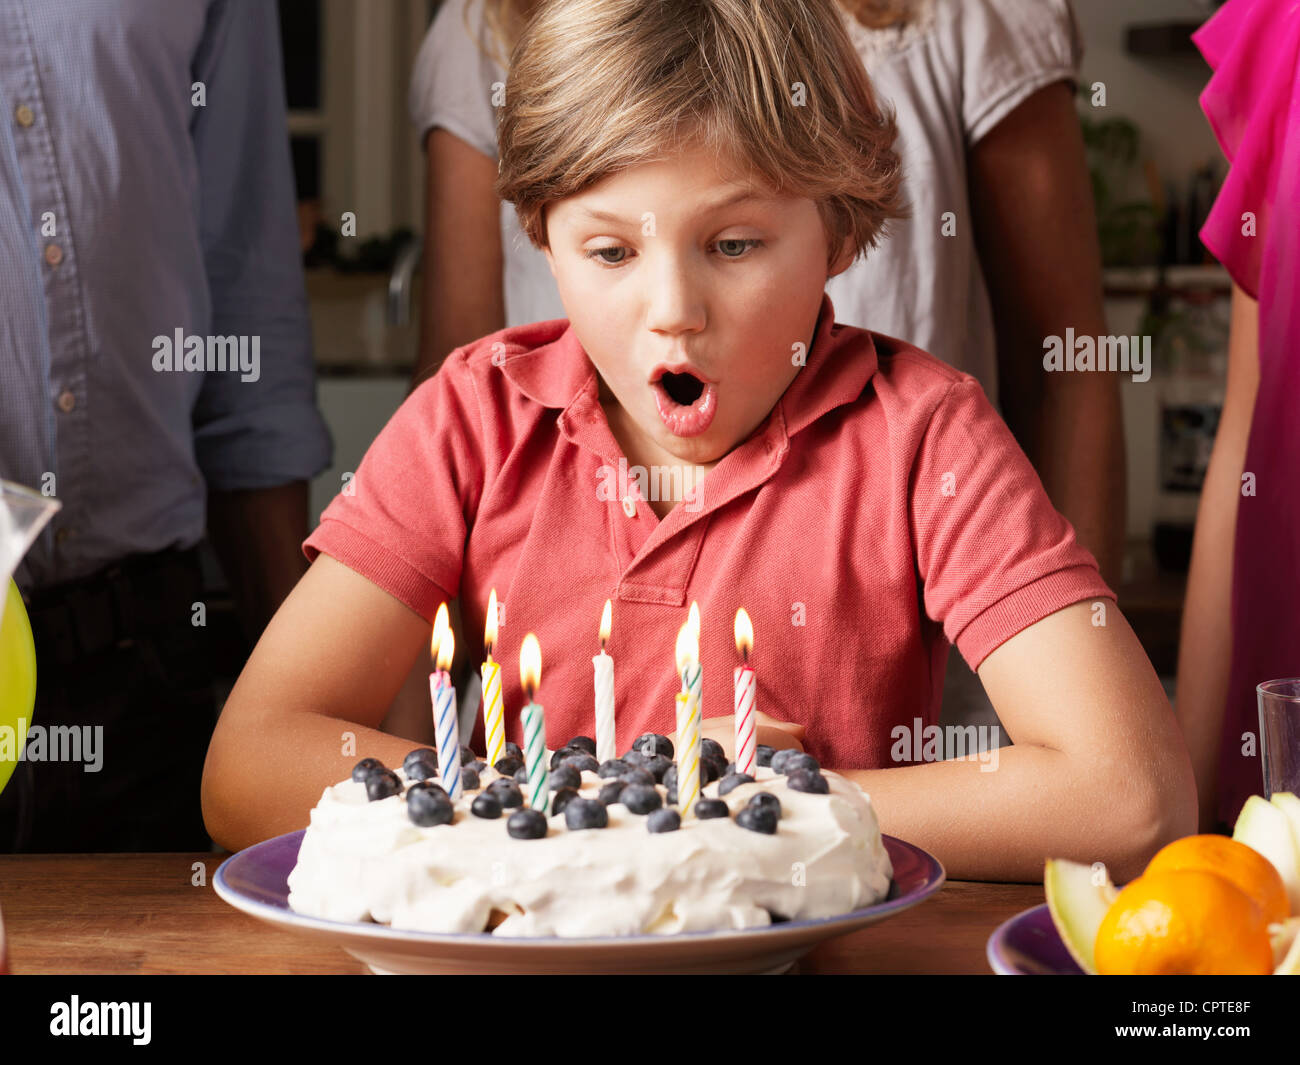 Virtual Birthday Cake With Candles To Blow Out